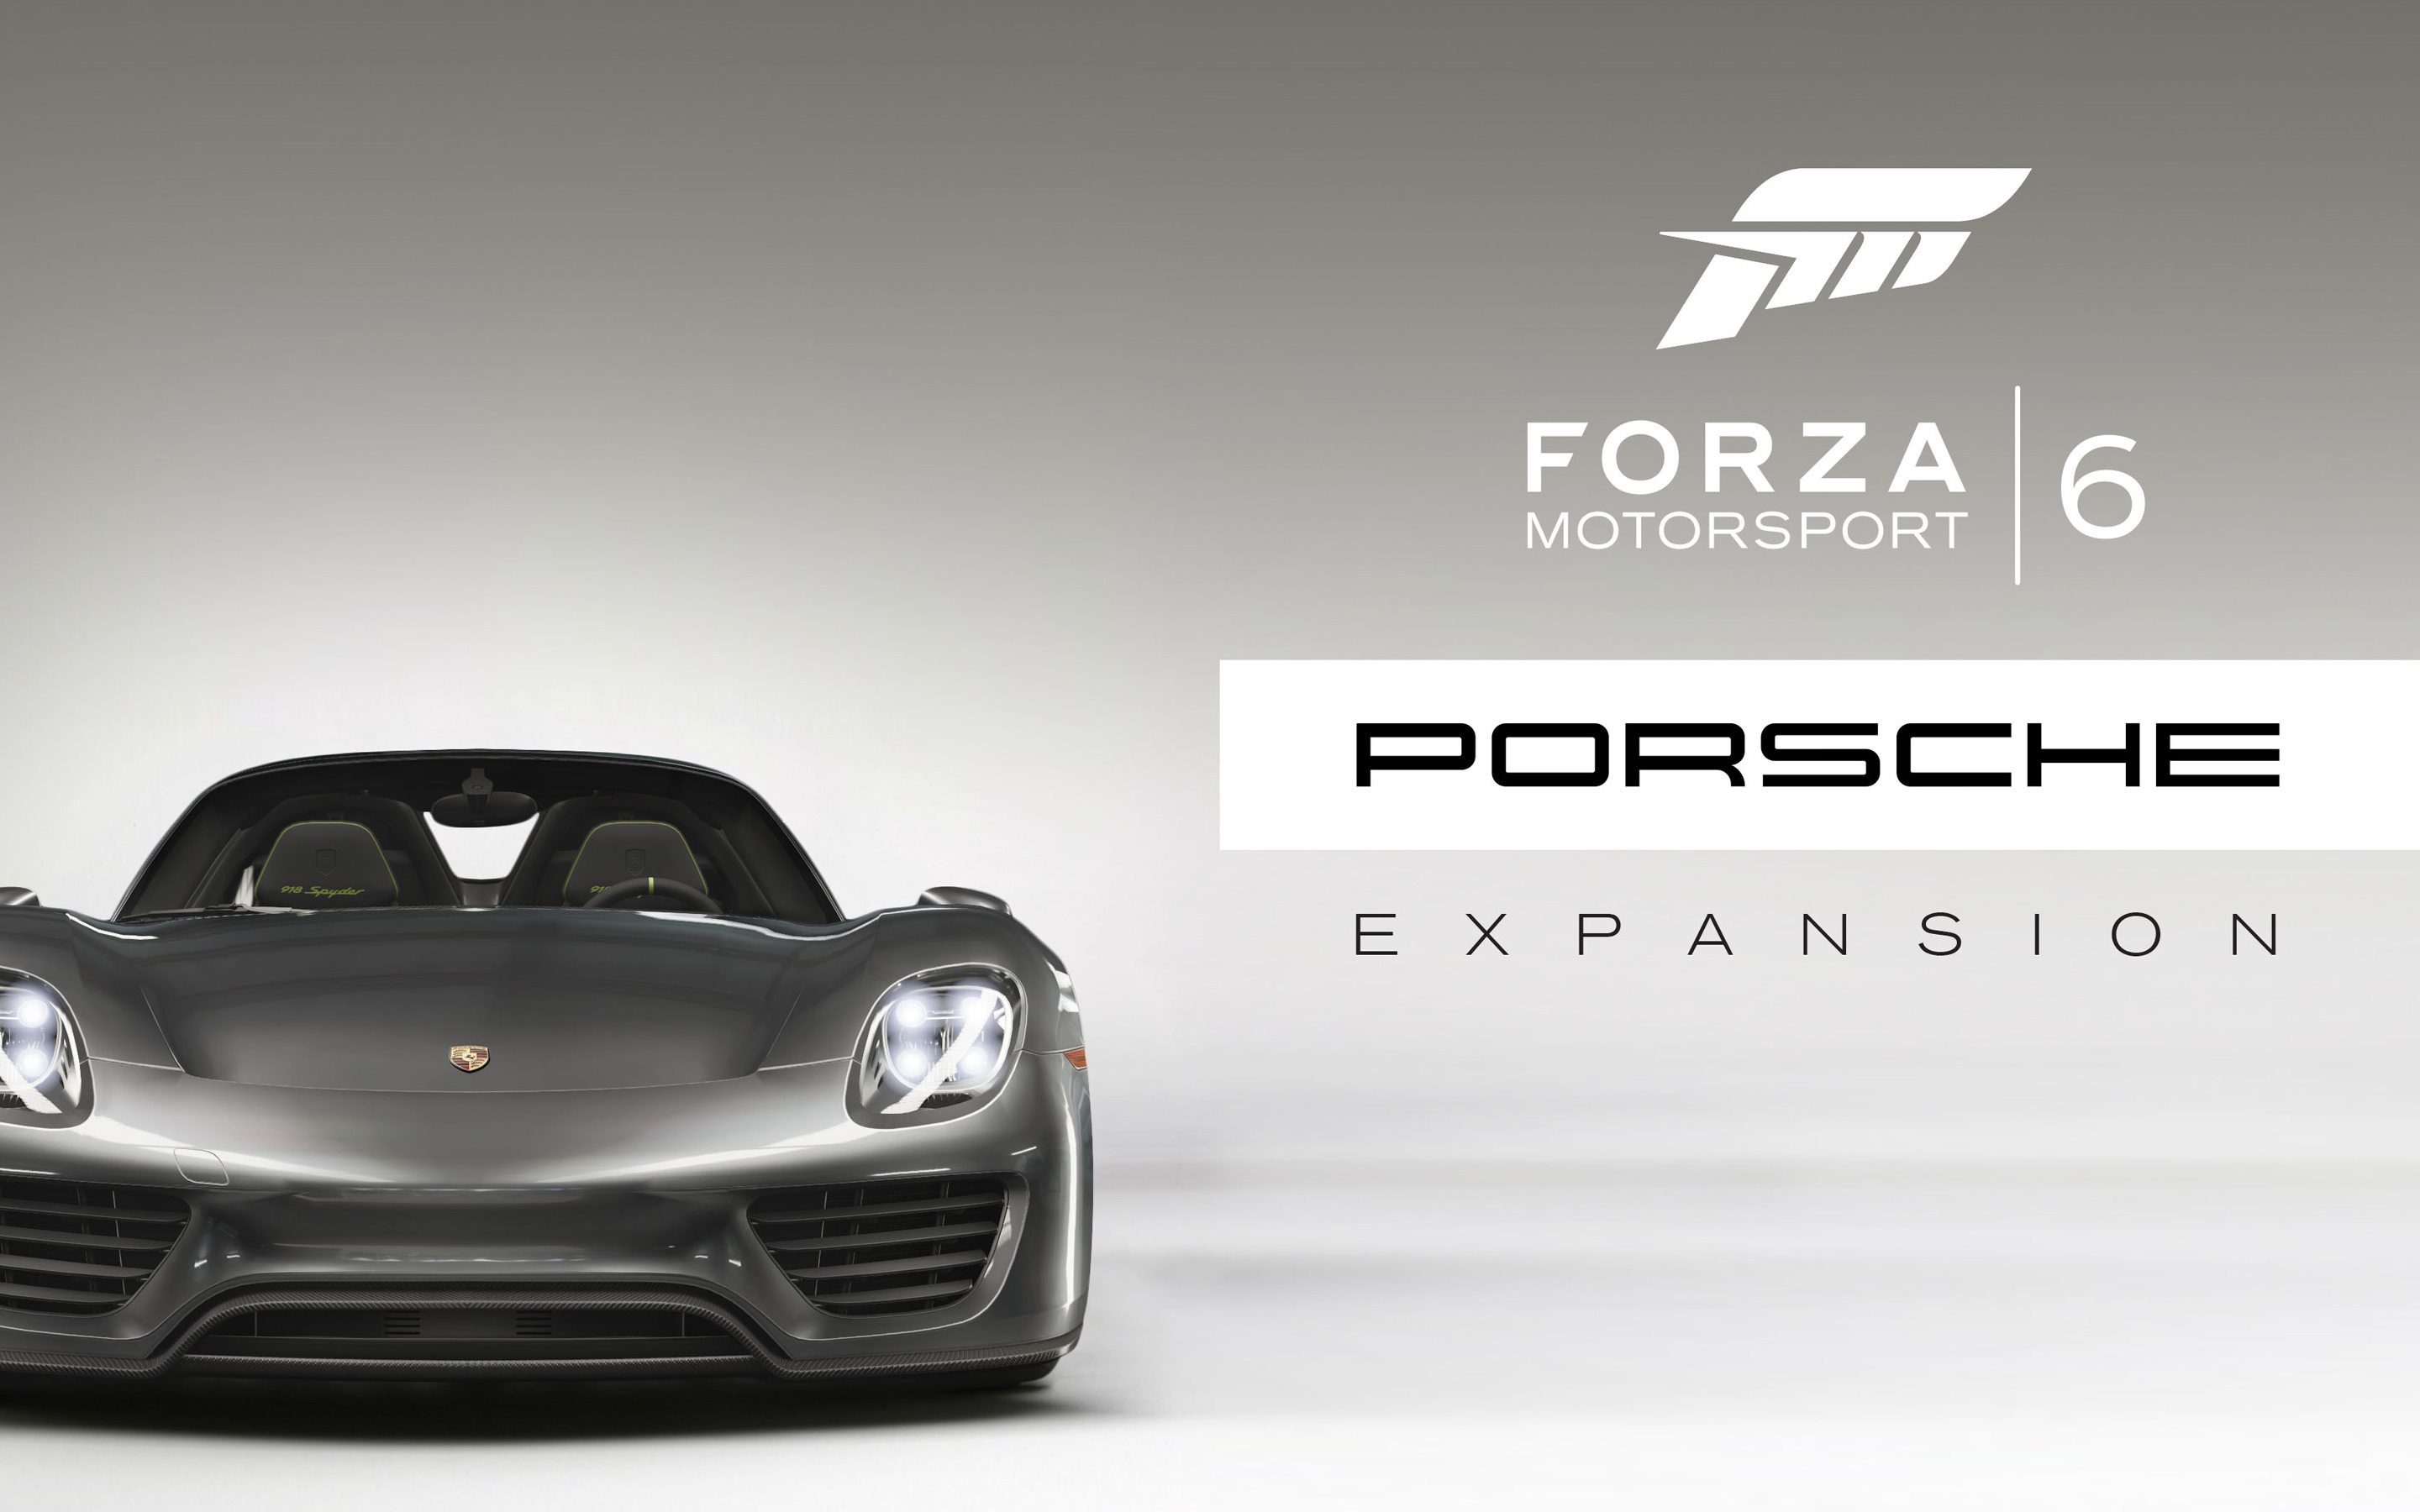 Forza Motorsport 6 Porsche Expansion Wallpapers HD Wallpapers 2880x1800